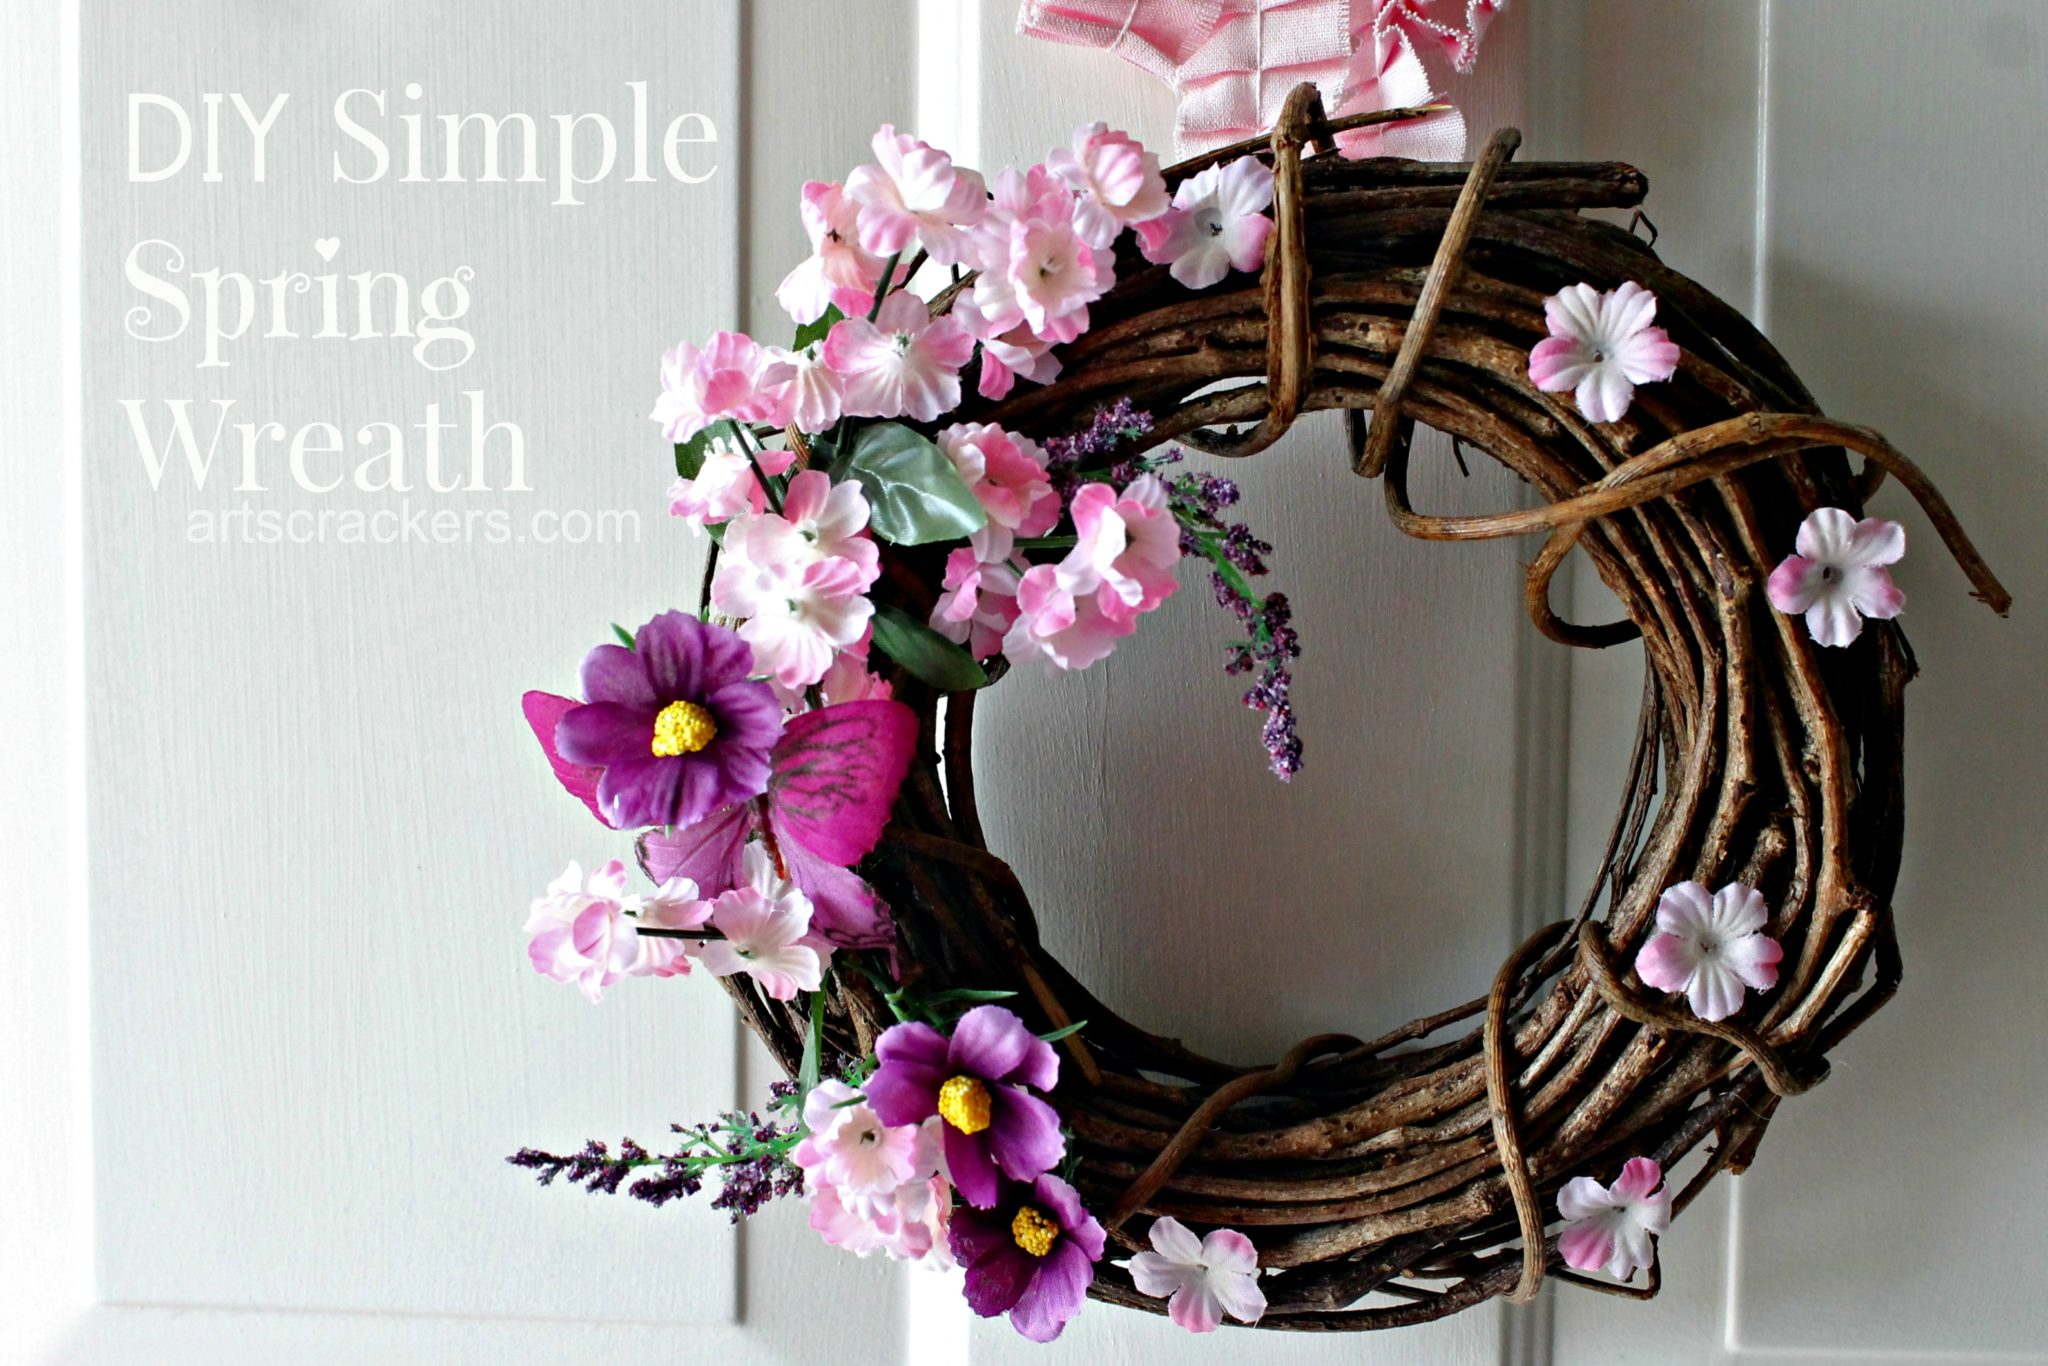 Simple Spring Wreath DIY. Click the picture to view the tutorial.